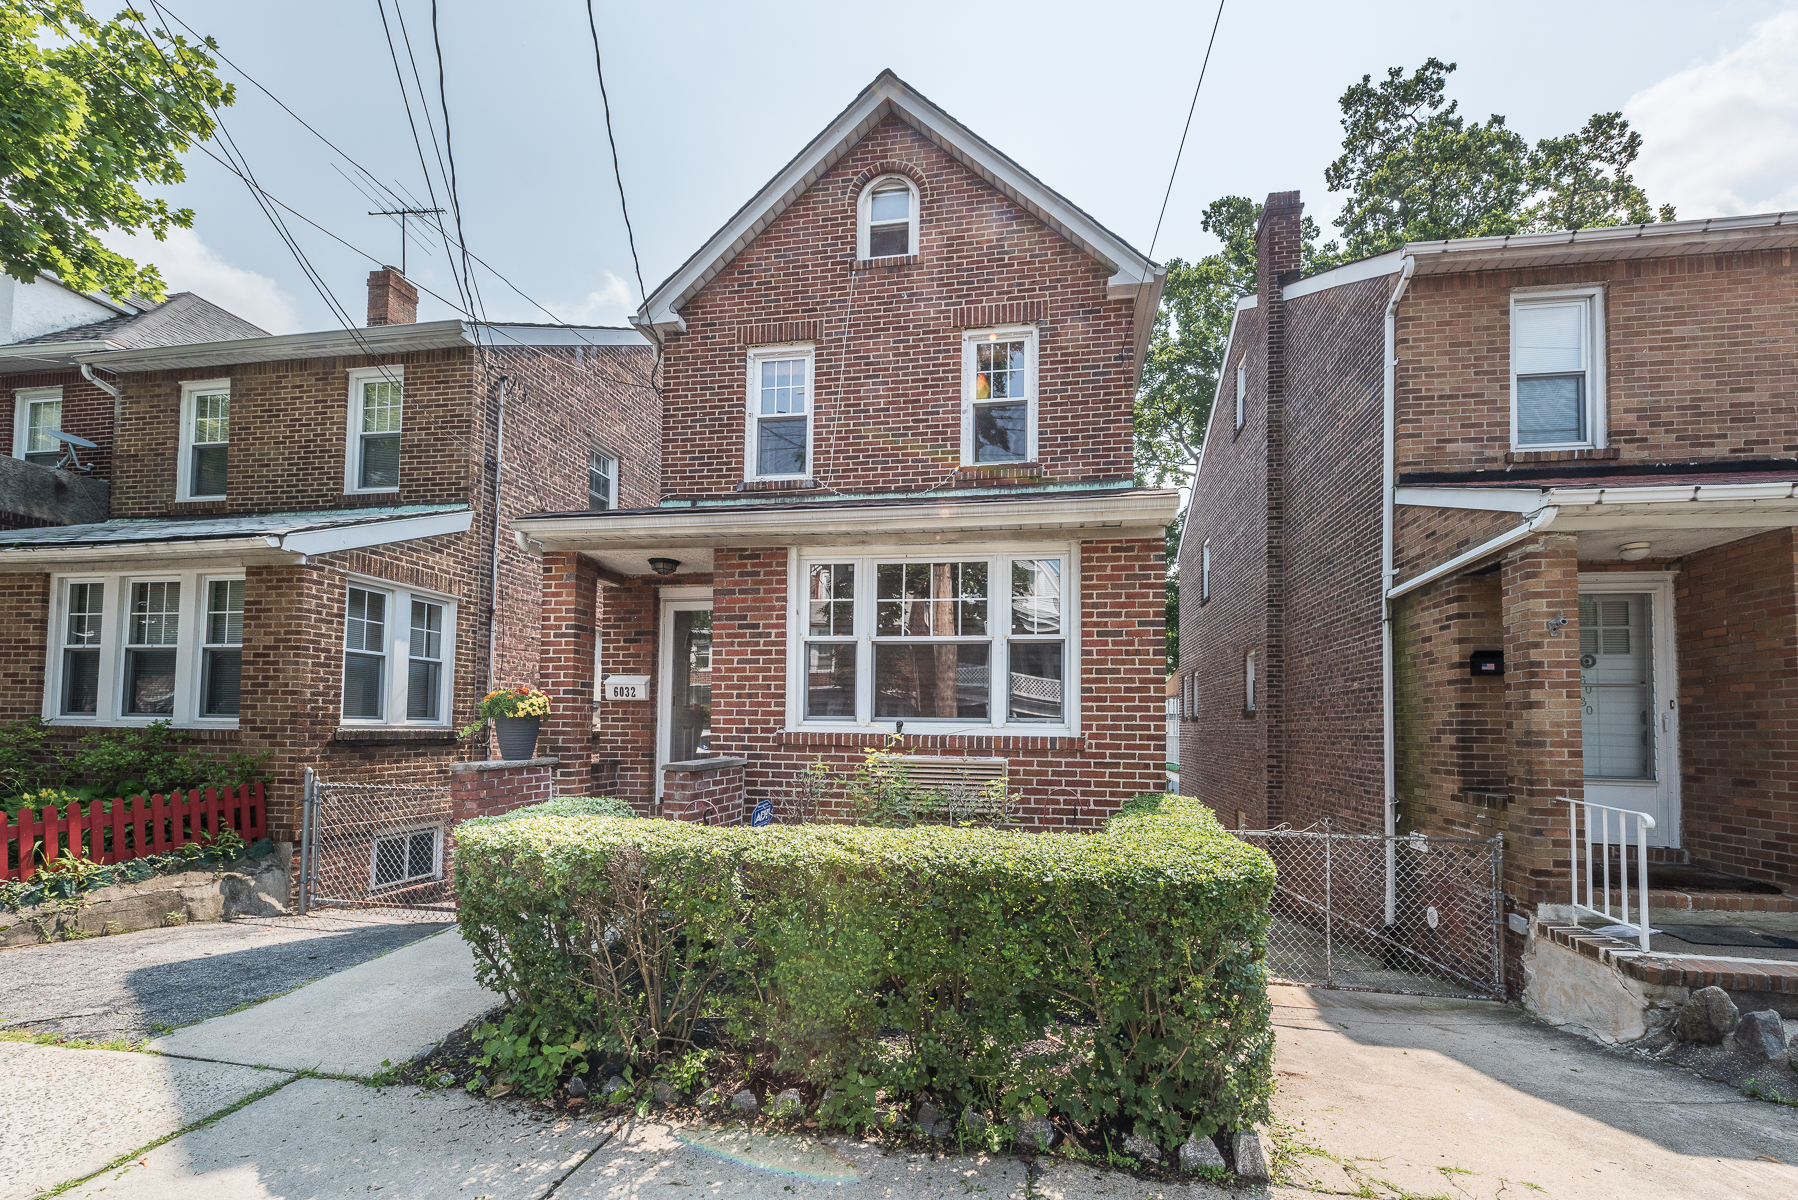 Maison unifamiliale pour l Vente à Charming, Detached Brick Home 6032 Liebig Avenue Riverdale, New York 10471 États-Unis